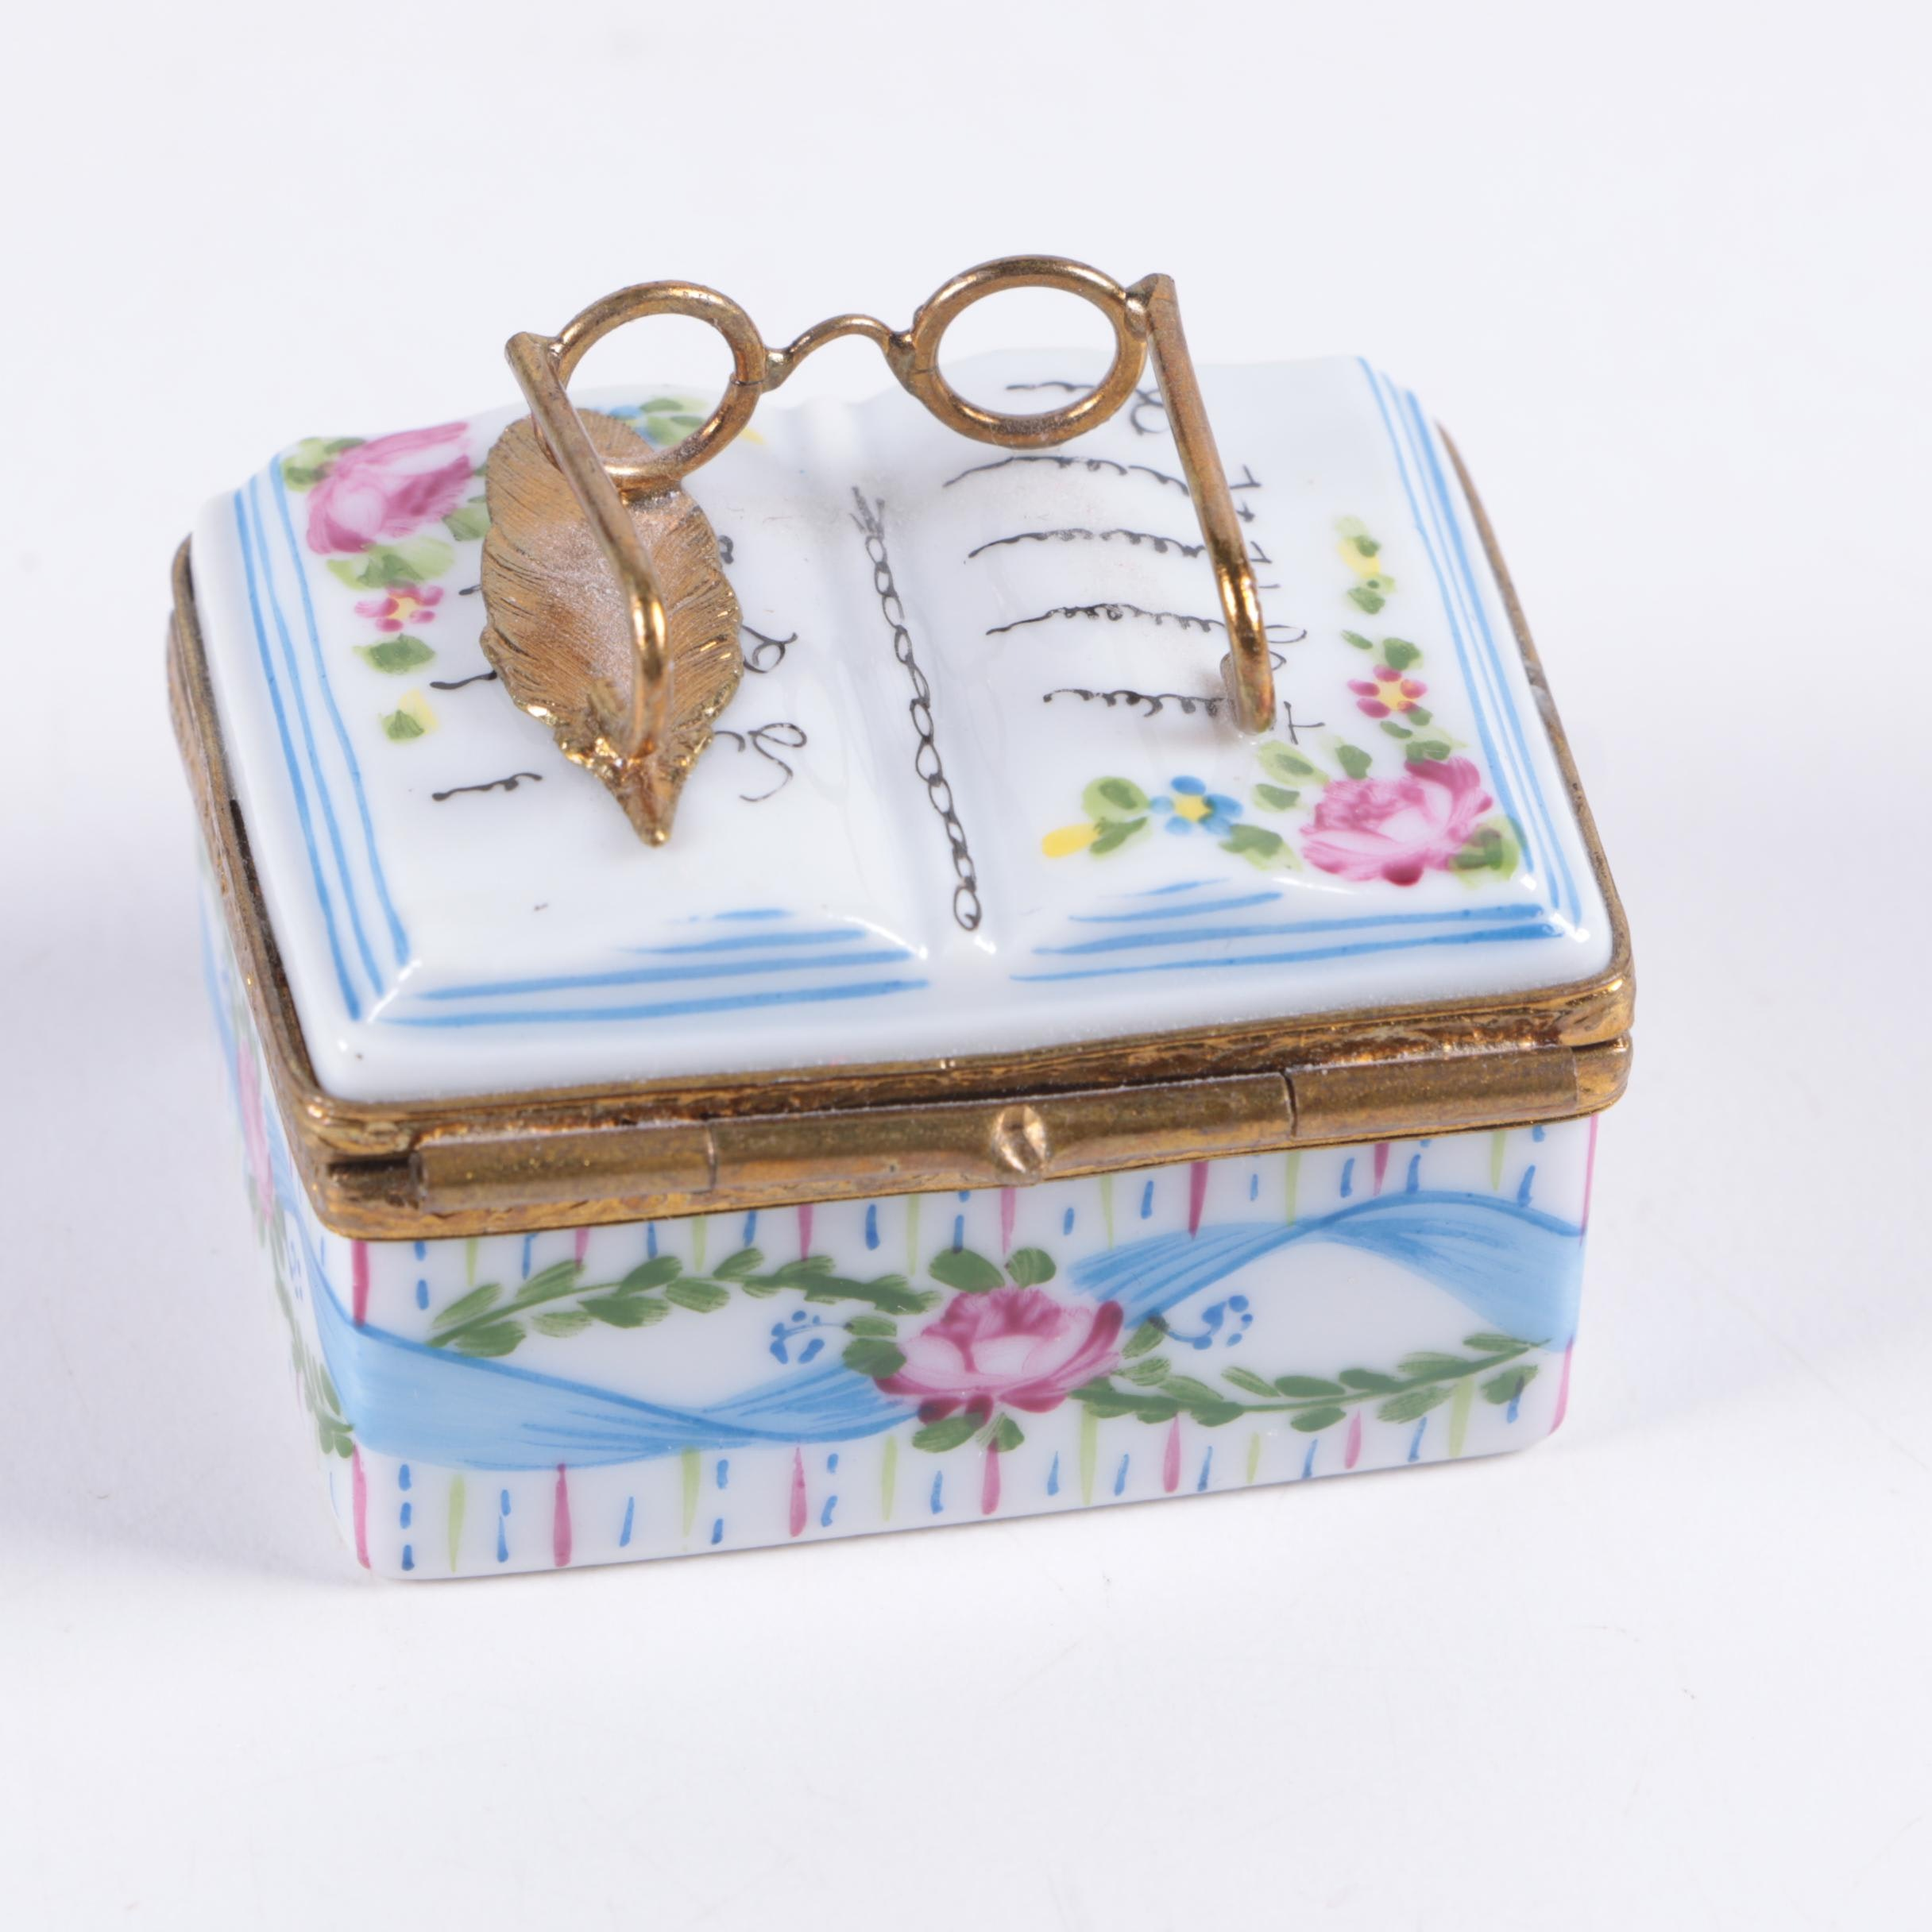 Limoges Porcelain Book Trinket Box